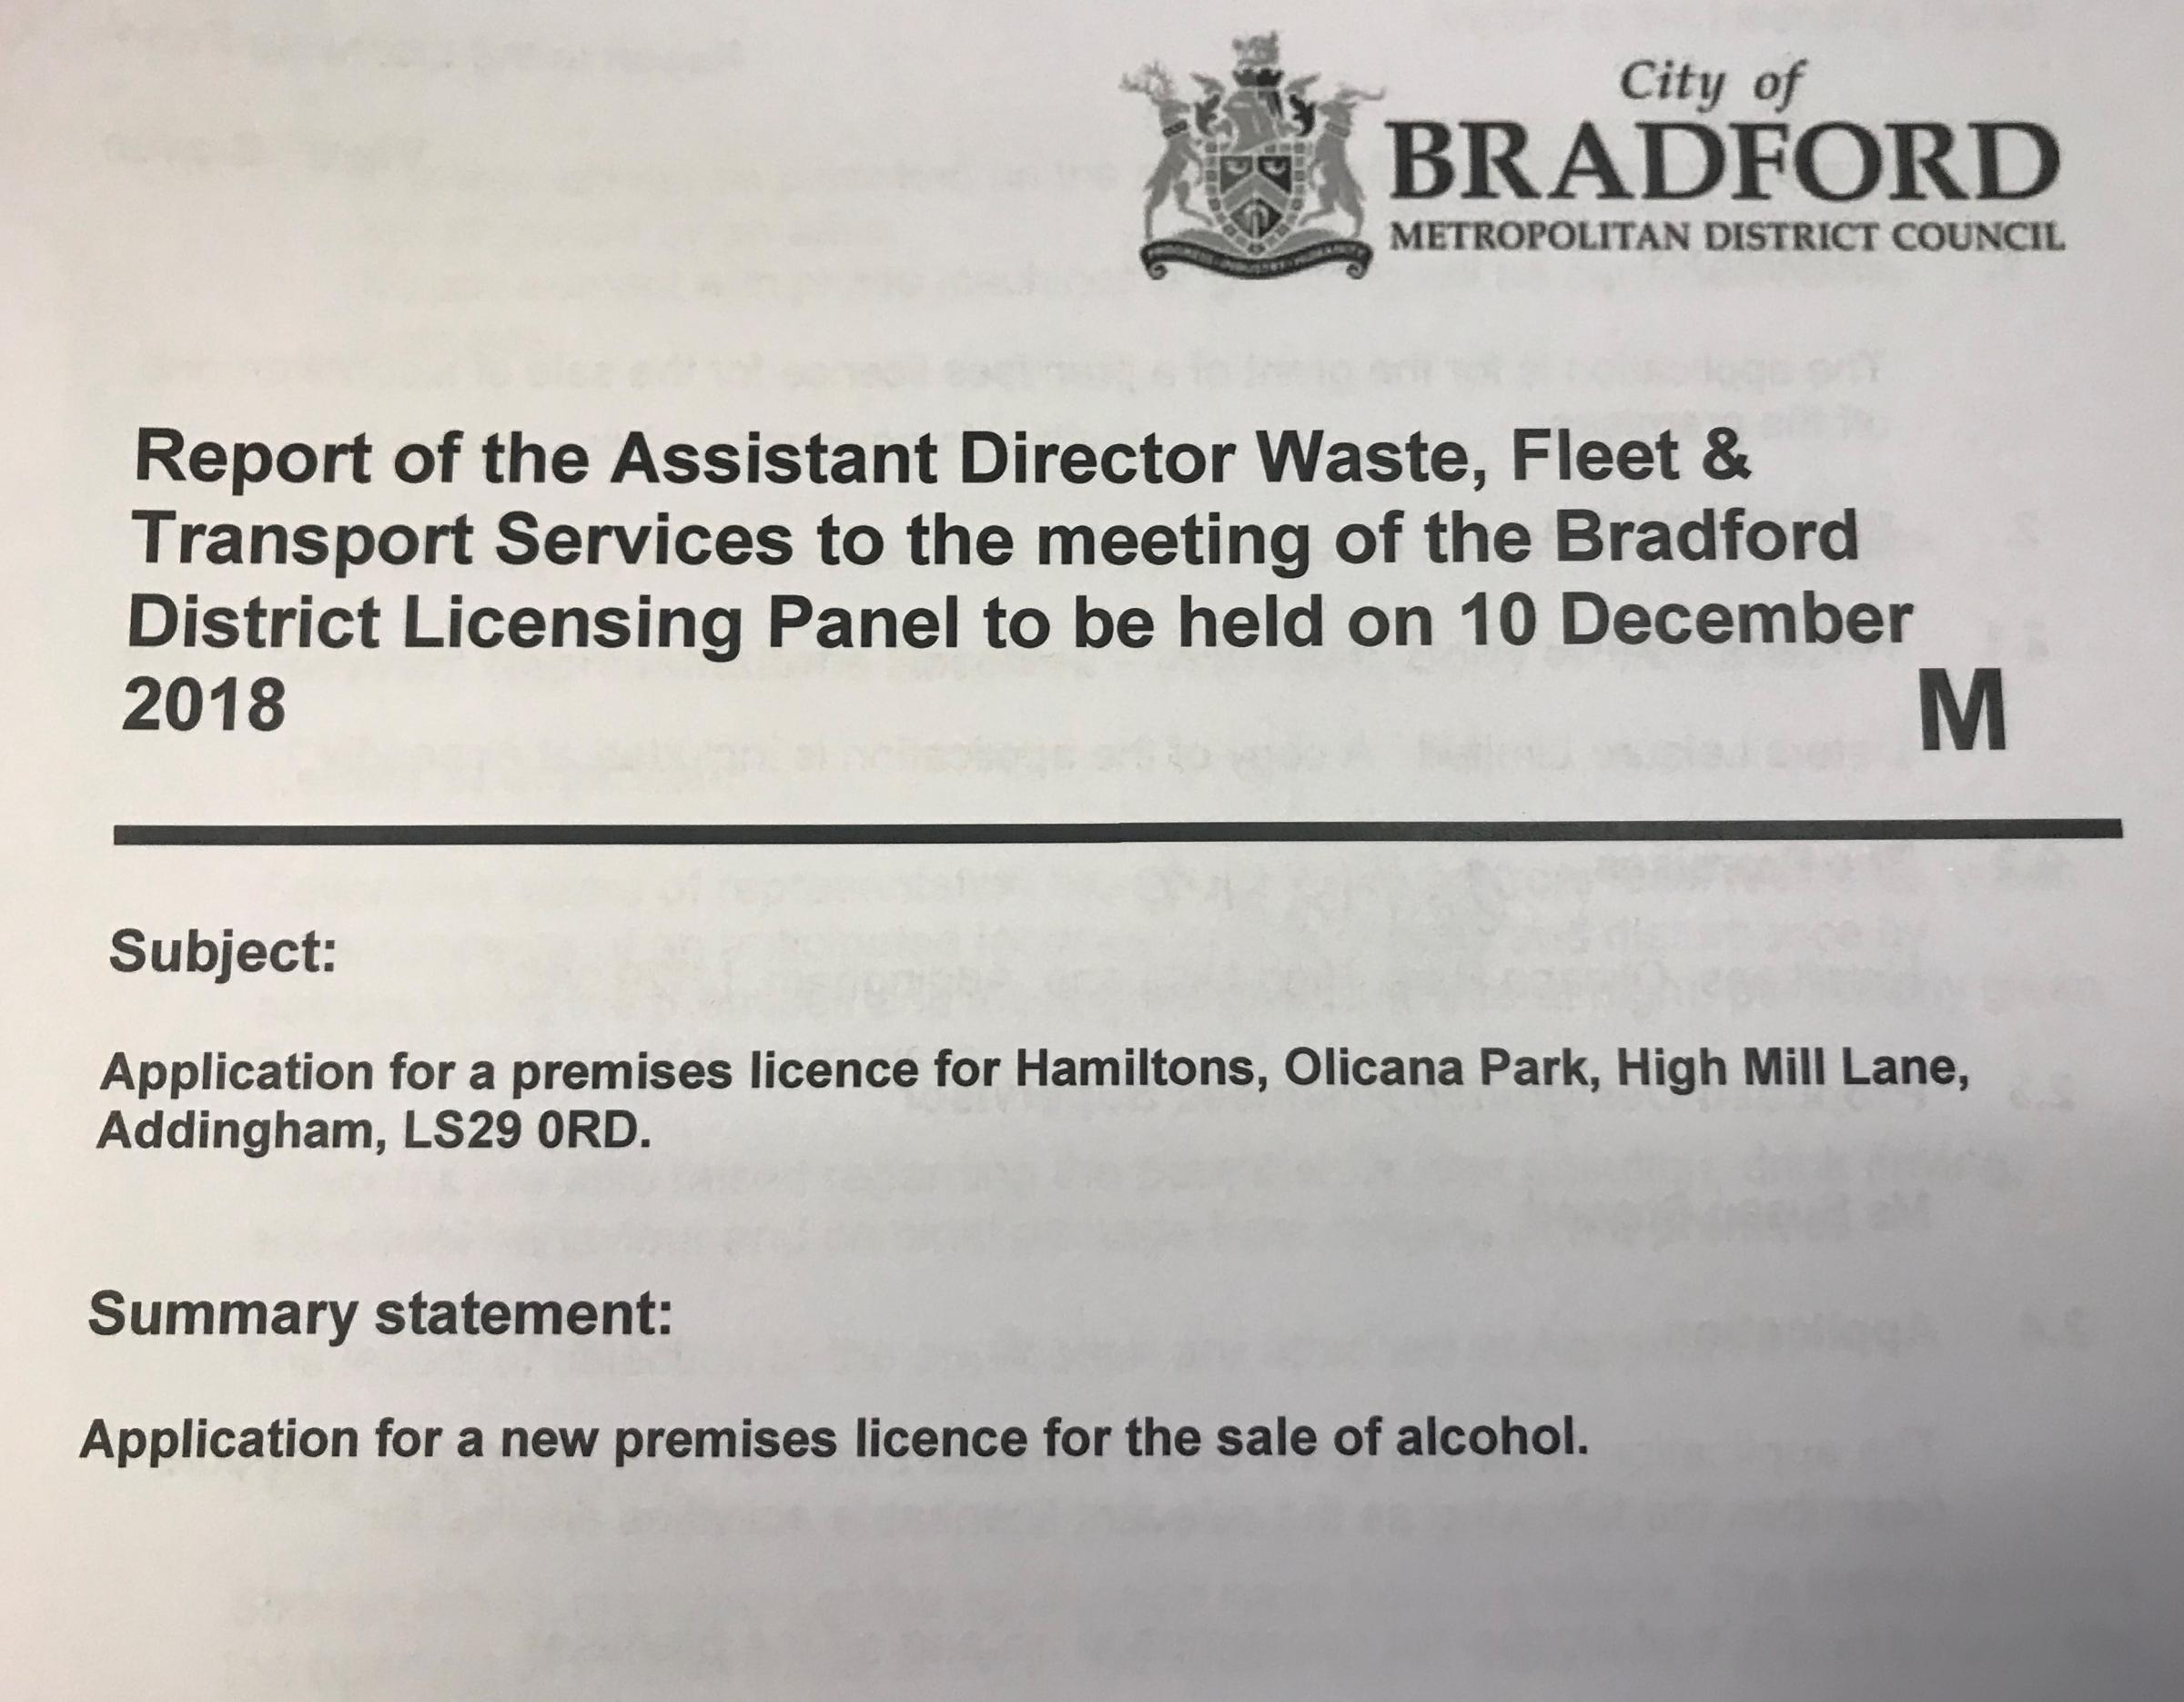 The application to Bradford Licensing Panel which will be heard on December 10